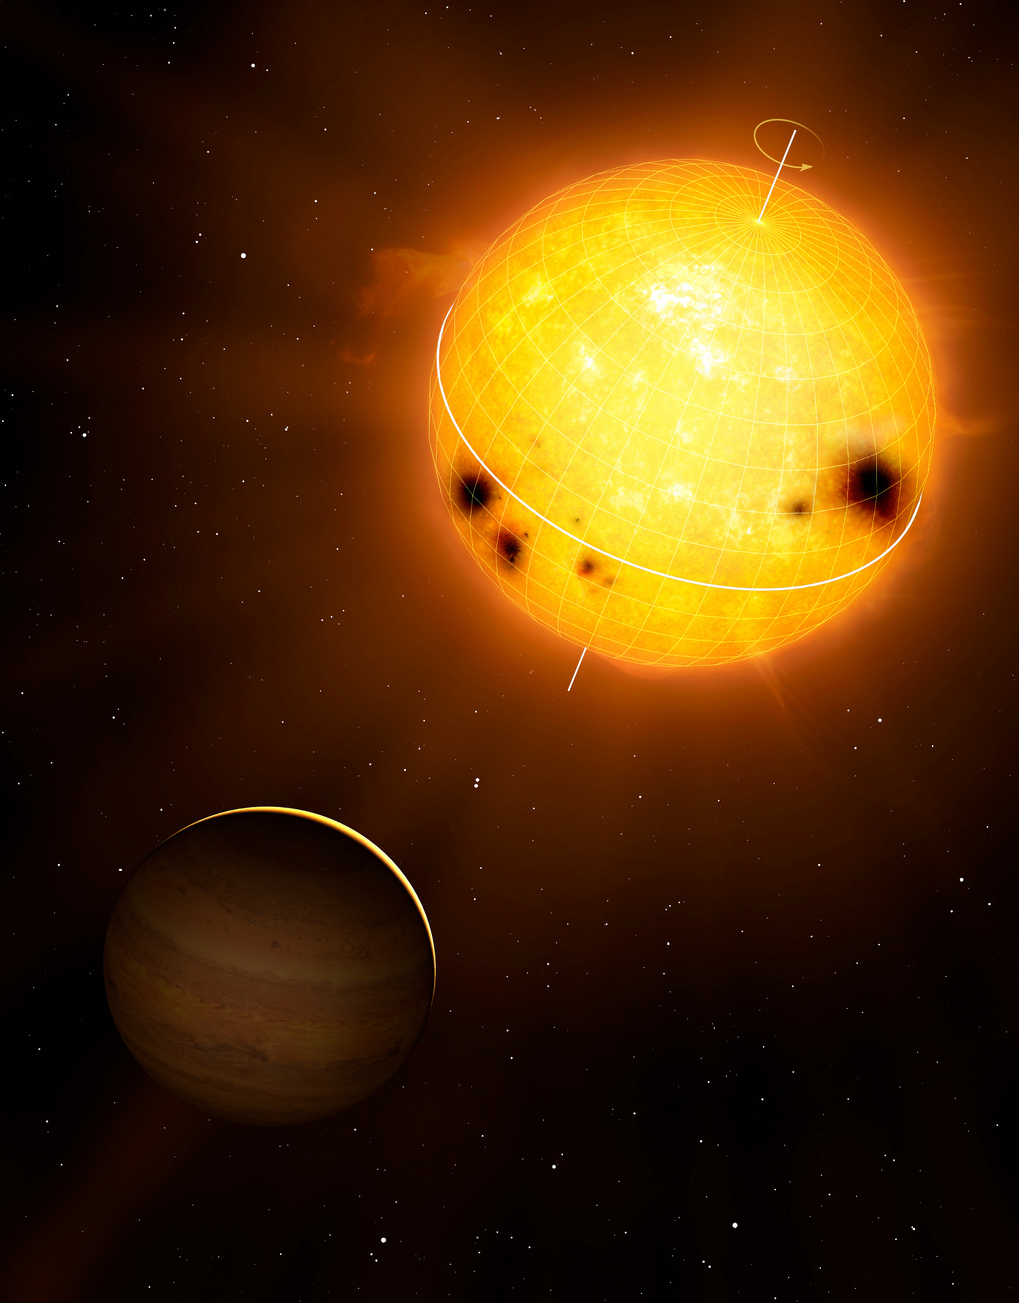 Europe Approves Two Missions: Search For Habitable Planets And Detect Gravitational Waves